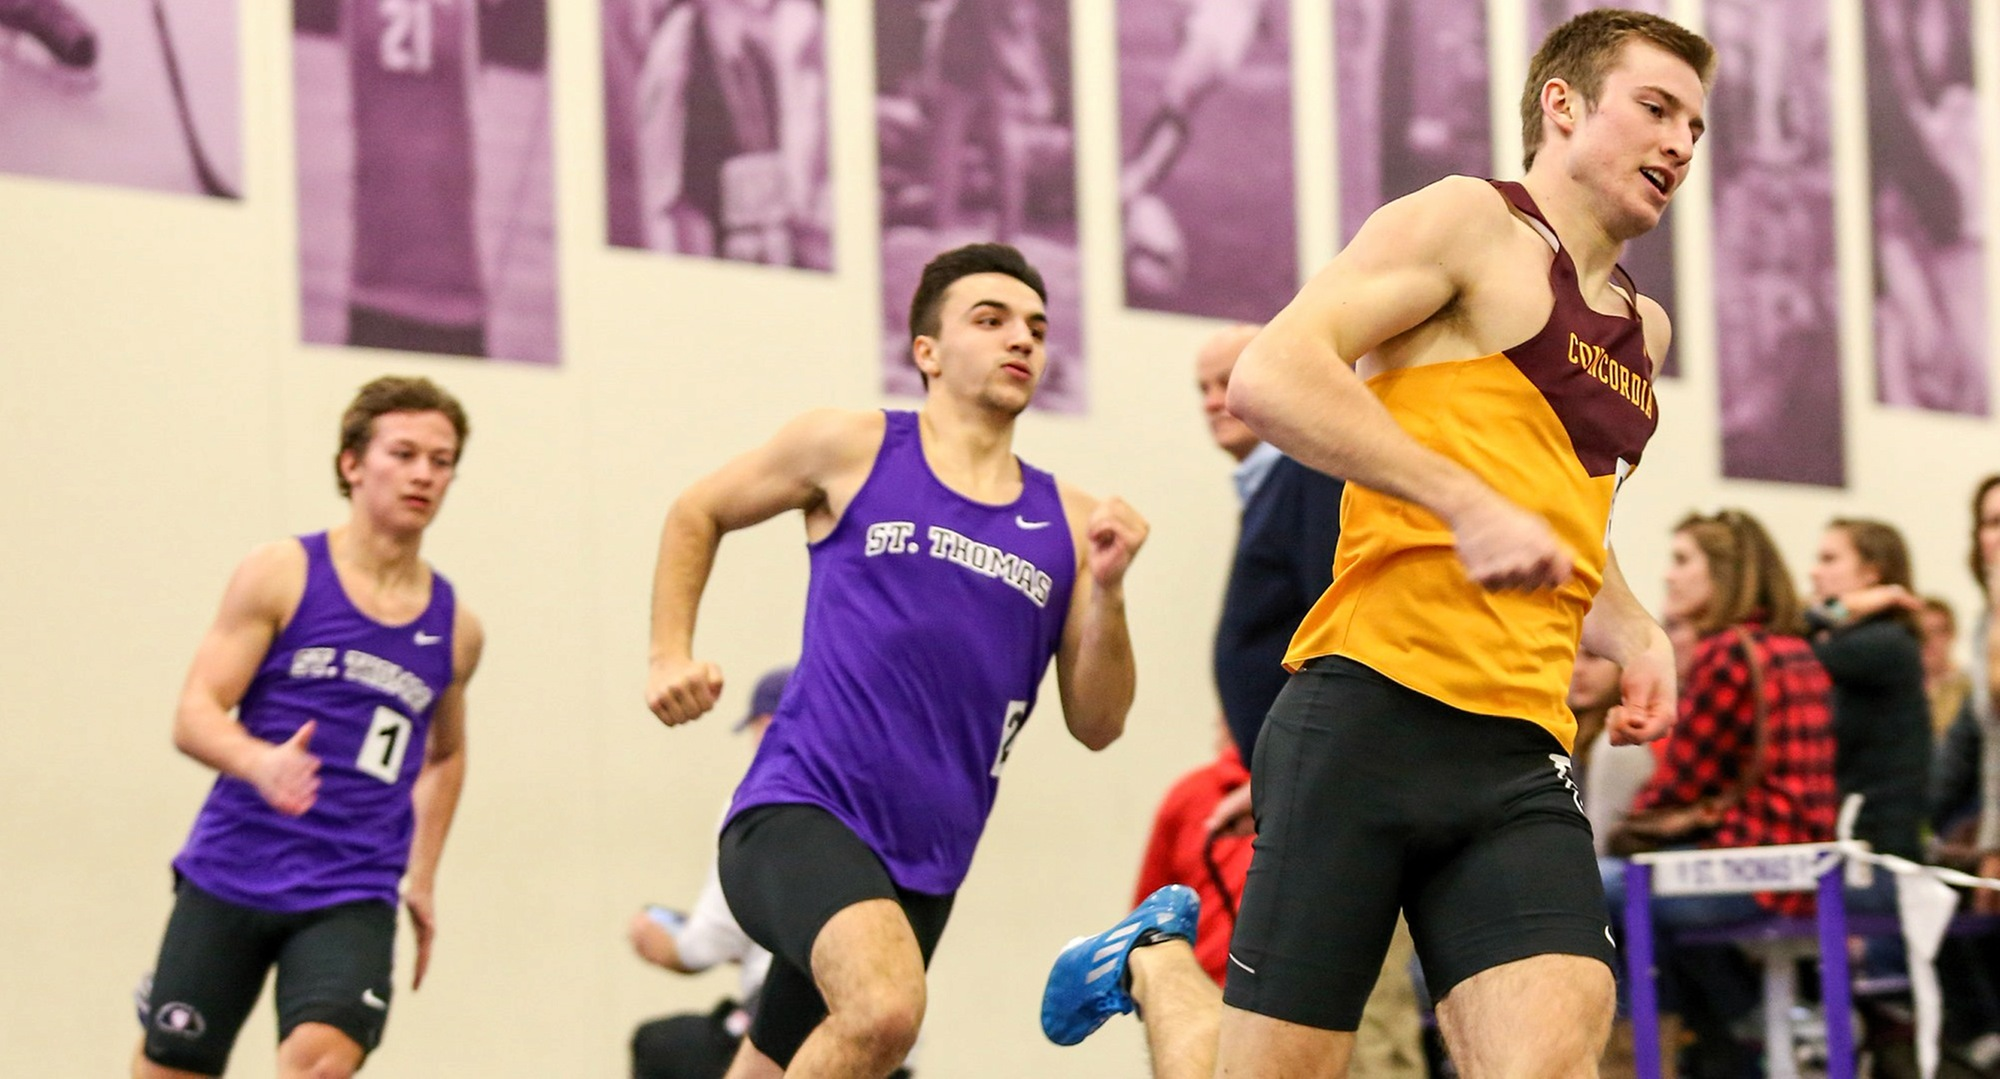 Sophomore David Supinski races to breaking his own school record in the 600 meters on Saturday at the MIAC Meet. (Photo courtesy of Nathan Lodermeier)